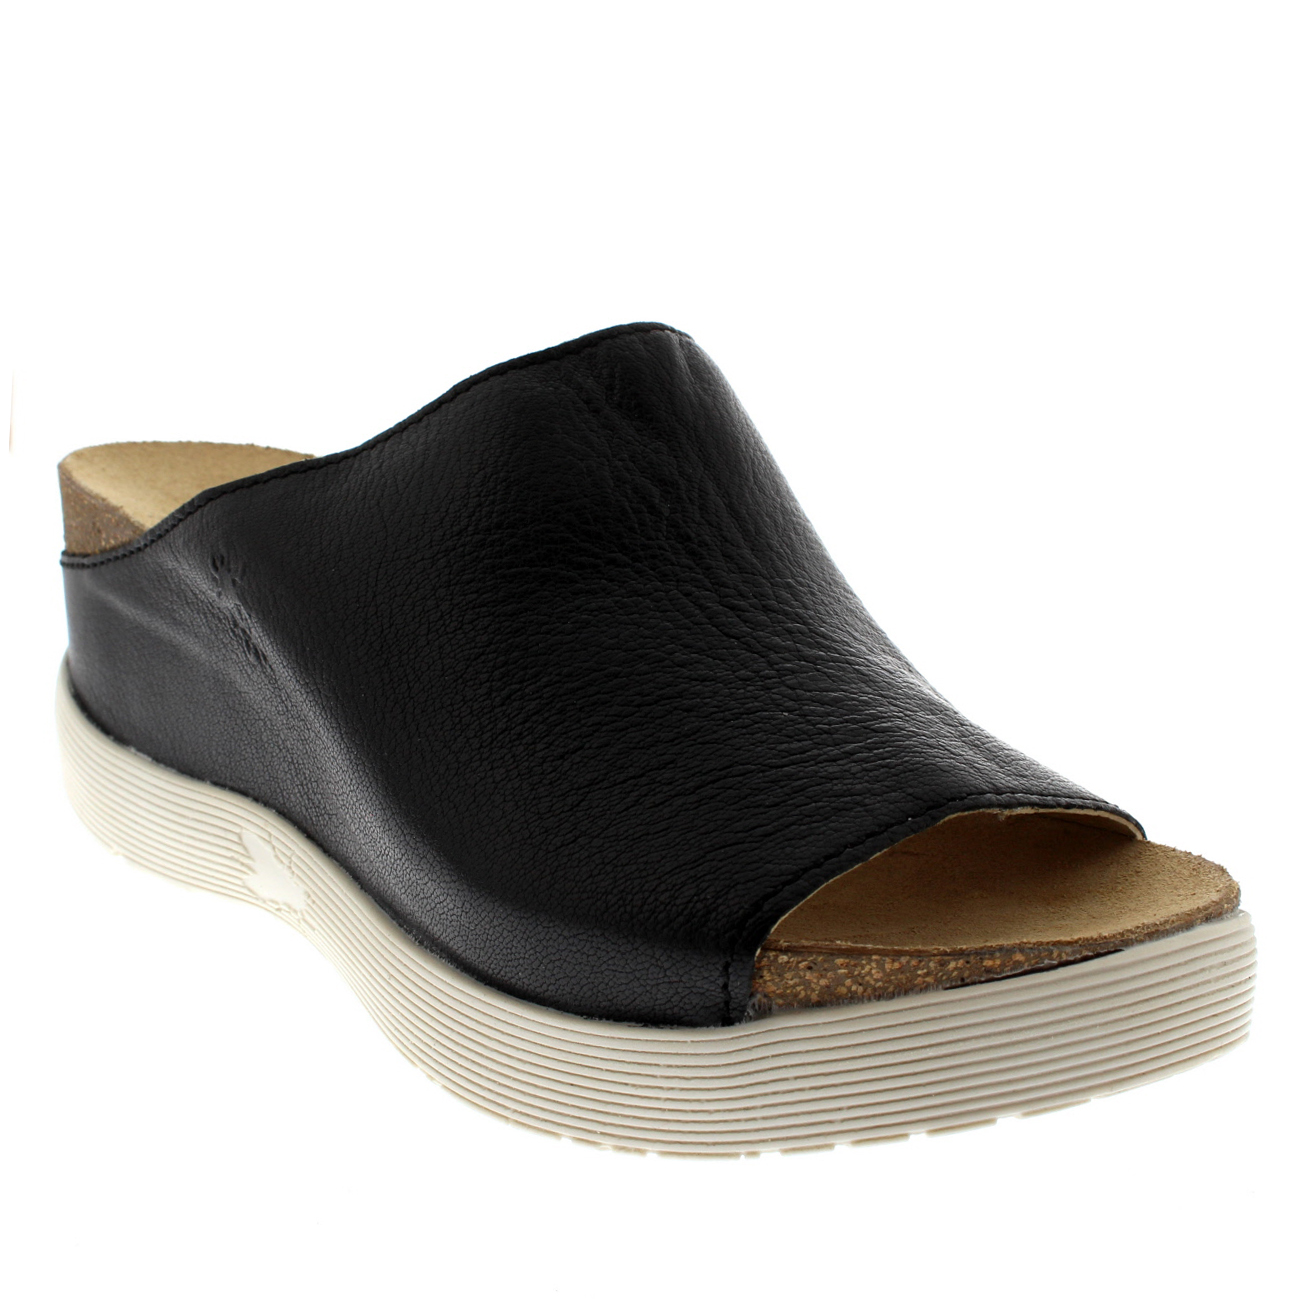 donna Fly Fly Fly London Wigg Mousse Sandals Open Toe Leather Mules Wedge Heel US 5-11 43d0ab